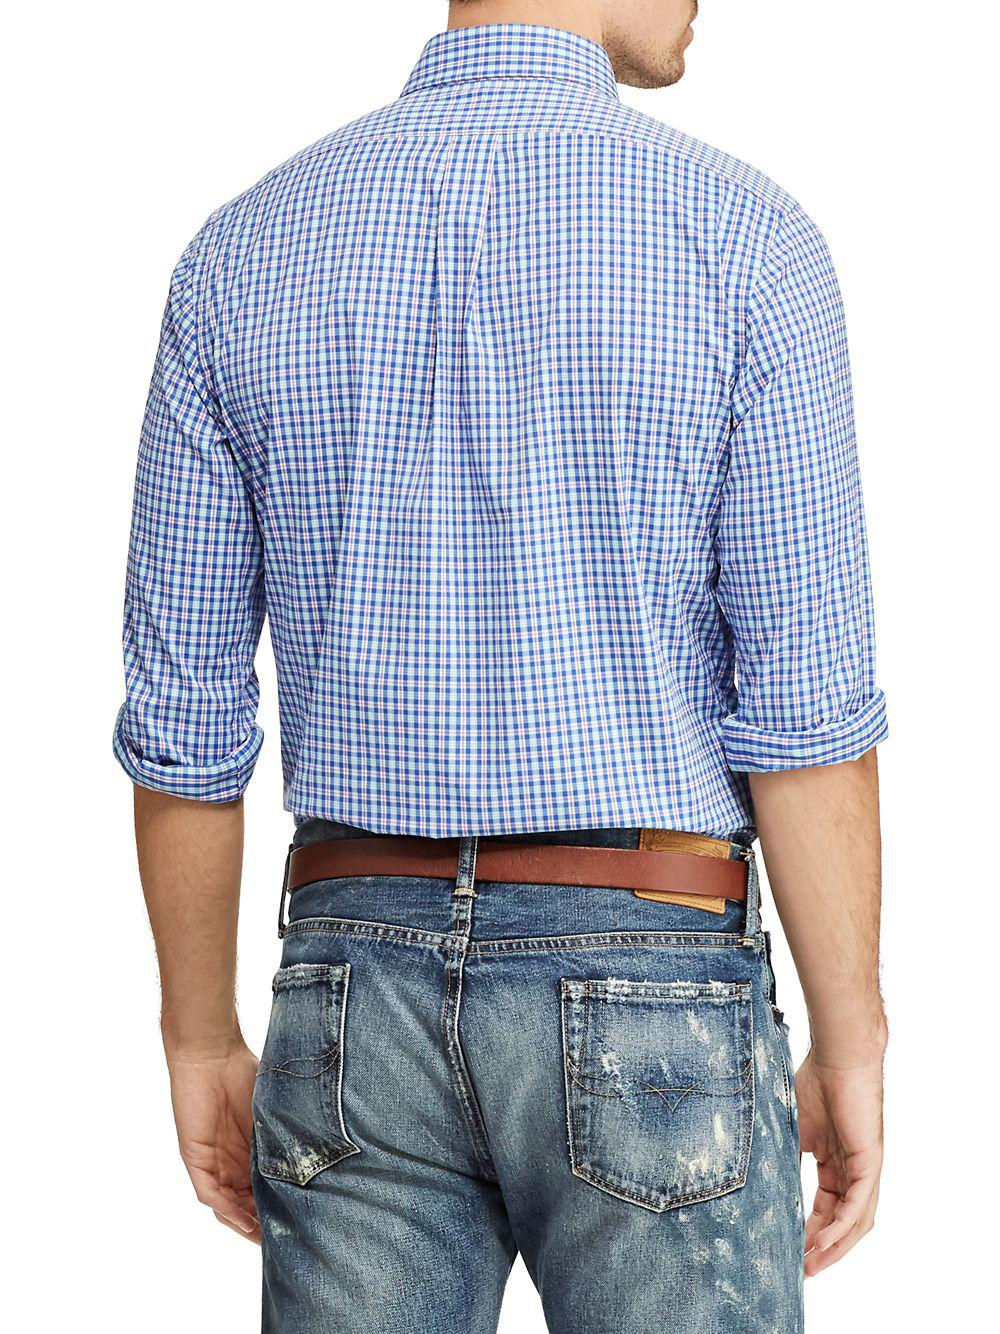 38a11ac2 Polo Ralph Lauren Classic-fit Oxford Button-down Shirt in Blue for Men -  Lyst